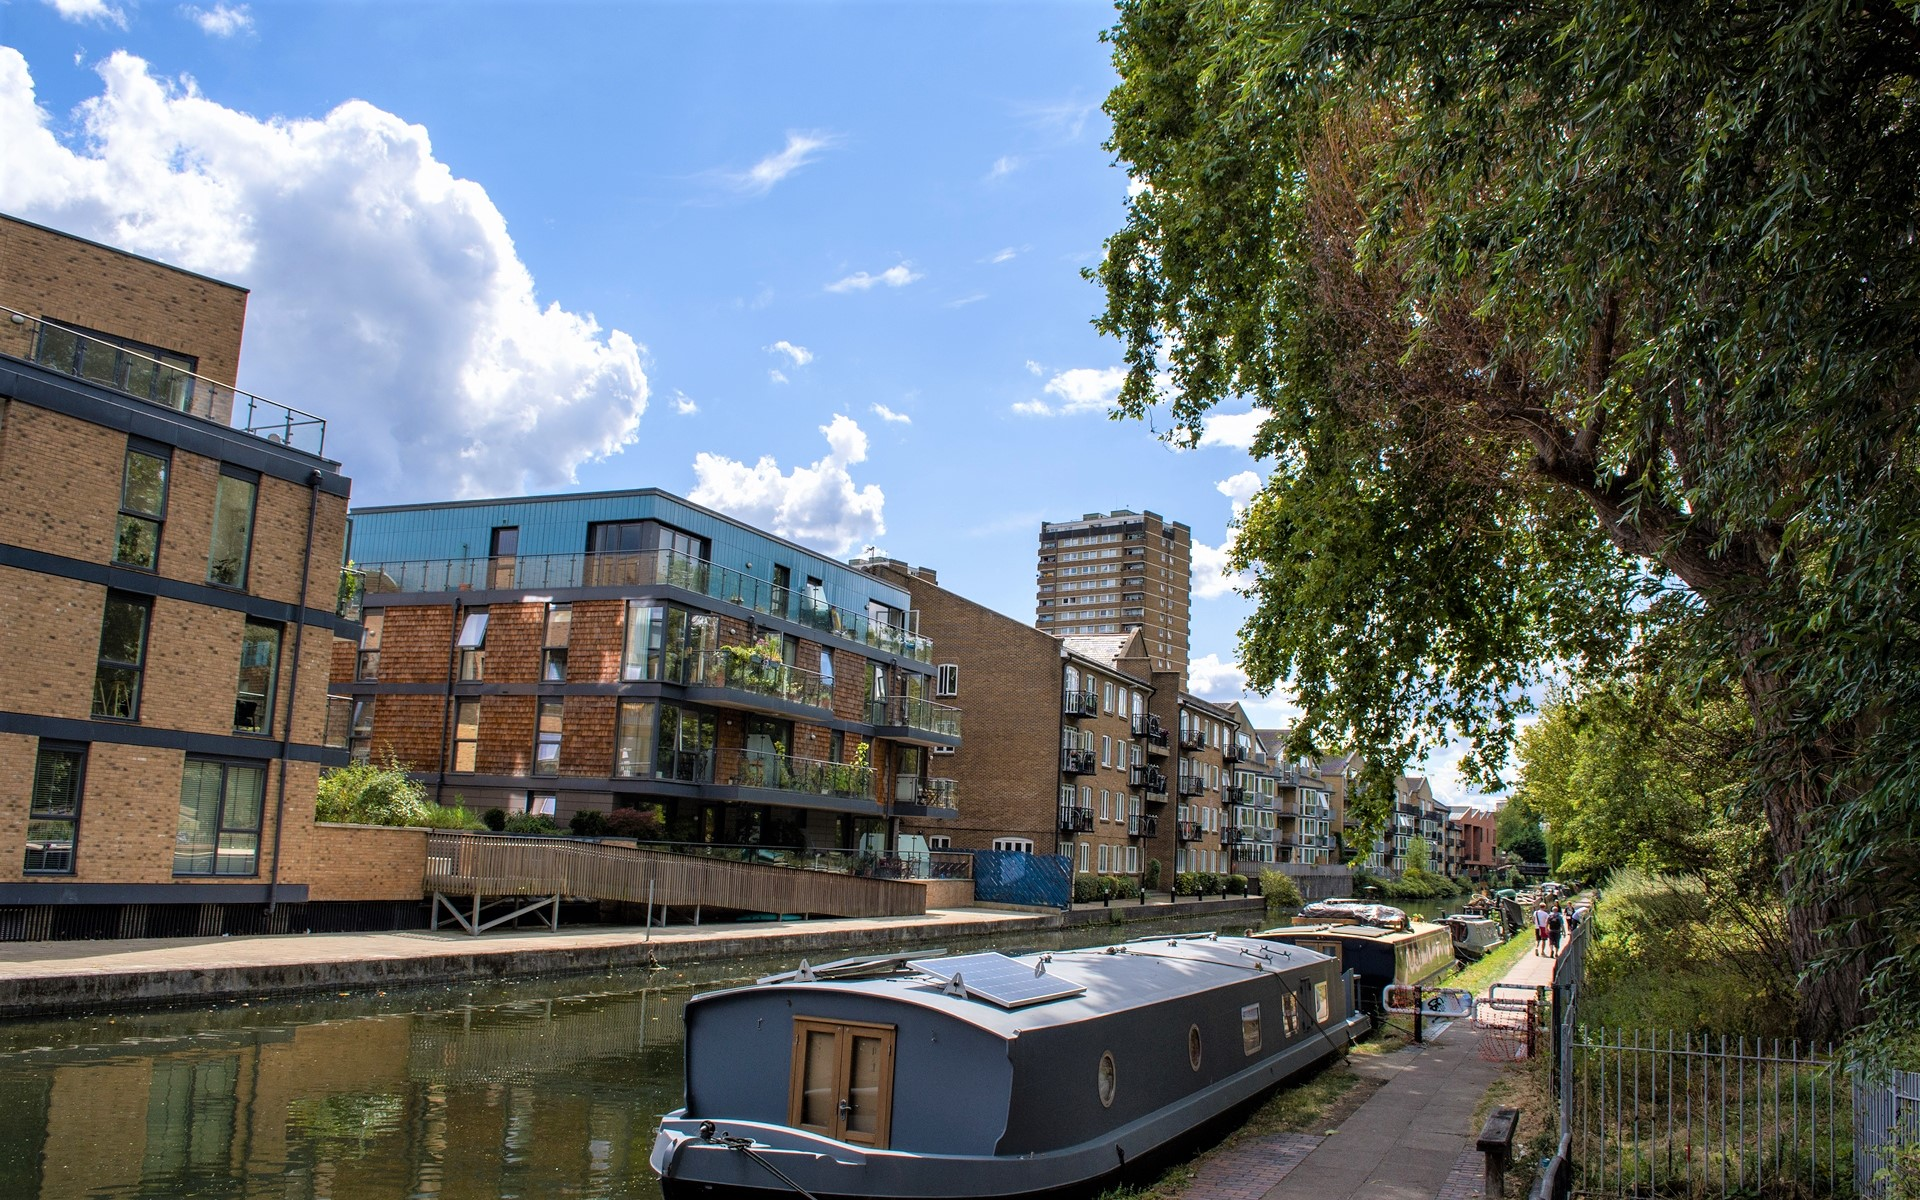 Empire Wharf pictured from Hertford Union Canal